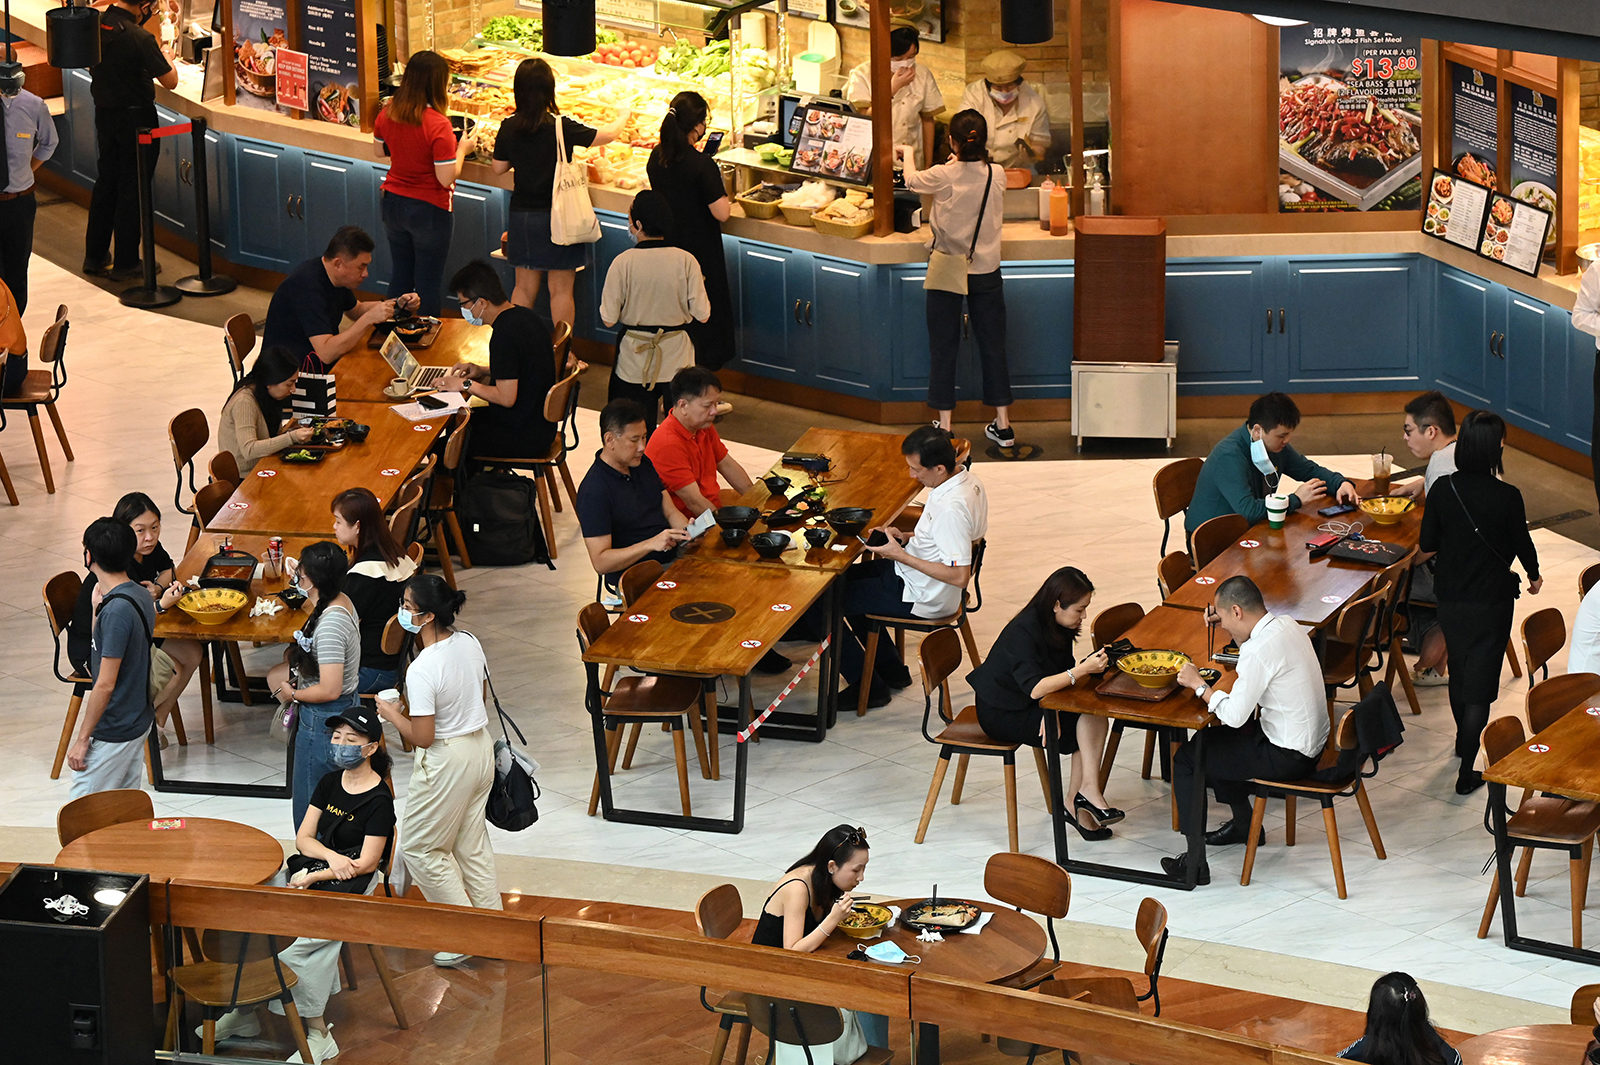 People dine at a restaurant in a shopping mall in Singapore, on May 14.